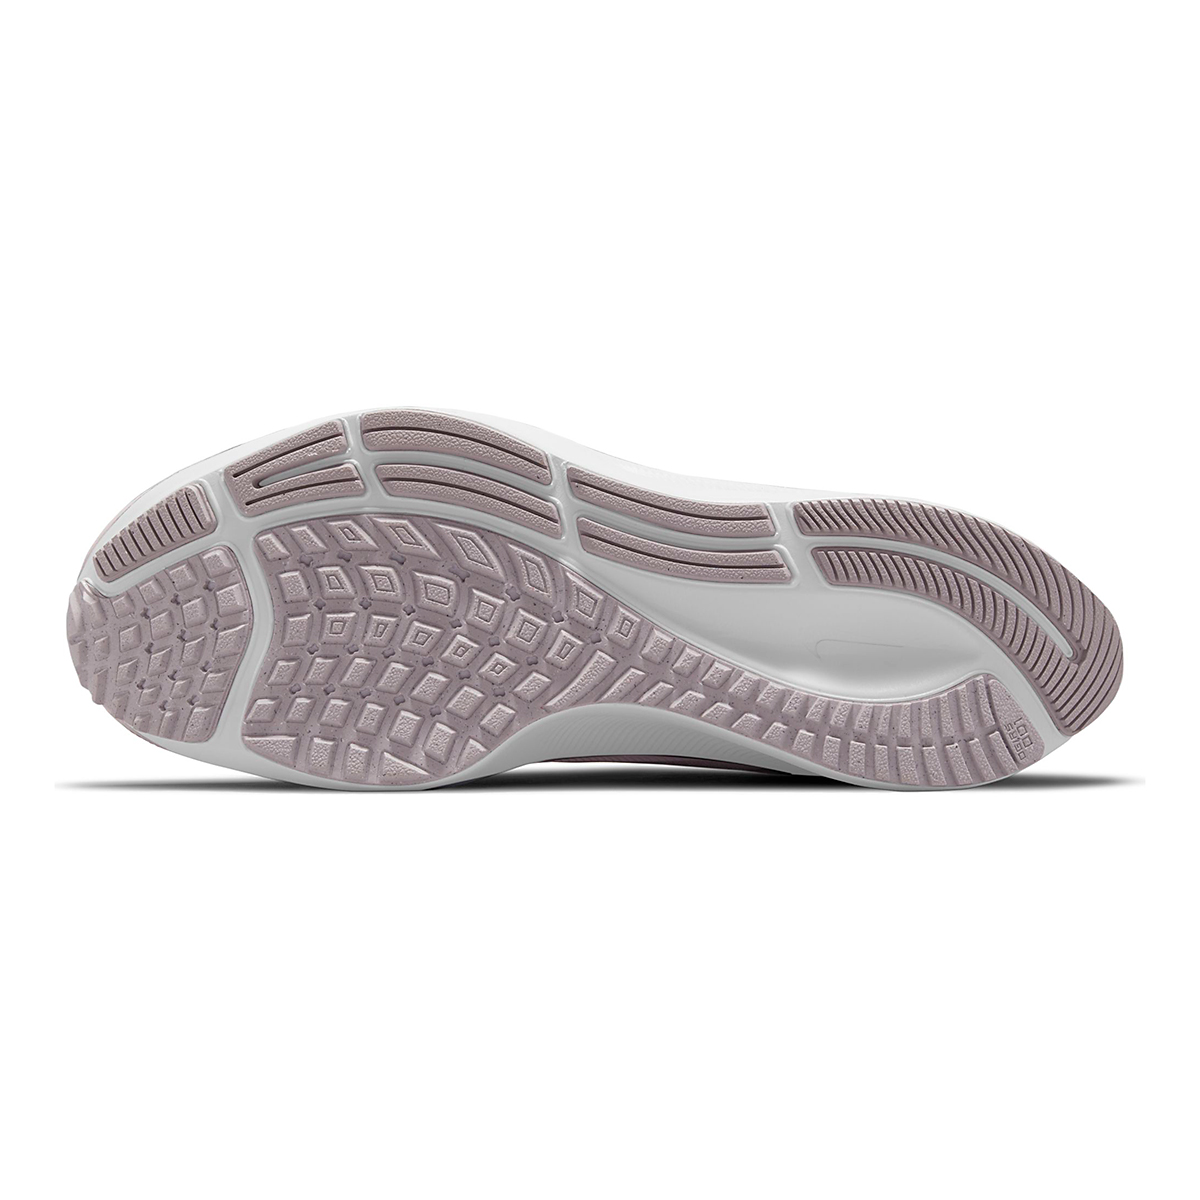 Women's Nike Air Zoom Pegasus 38 Running Shoe - Color: Champagne/White/Arctic Pink - Size: 5 - Width: Regular, Champagne/White/Arctic Pink, large, image 7